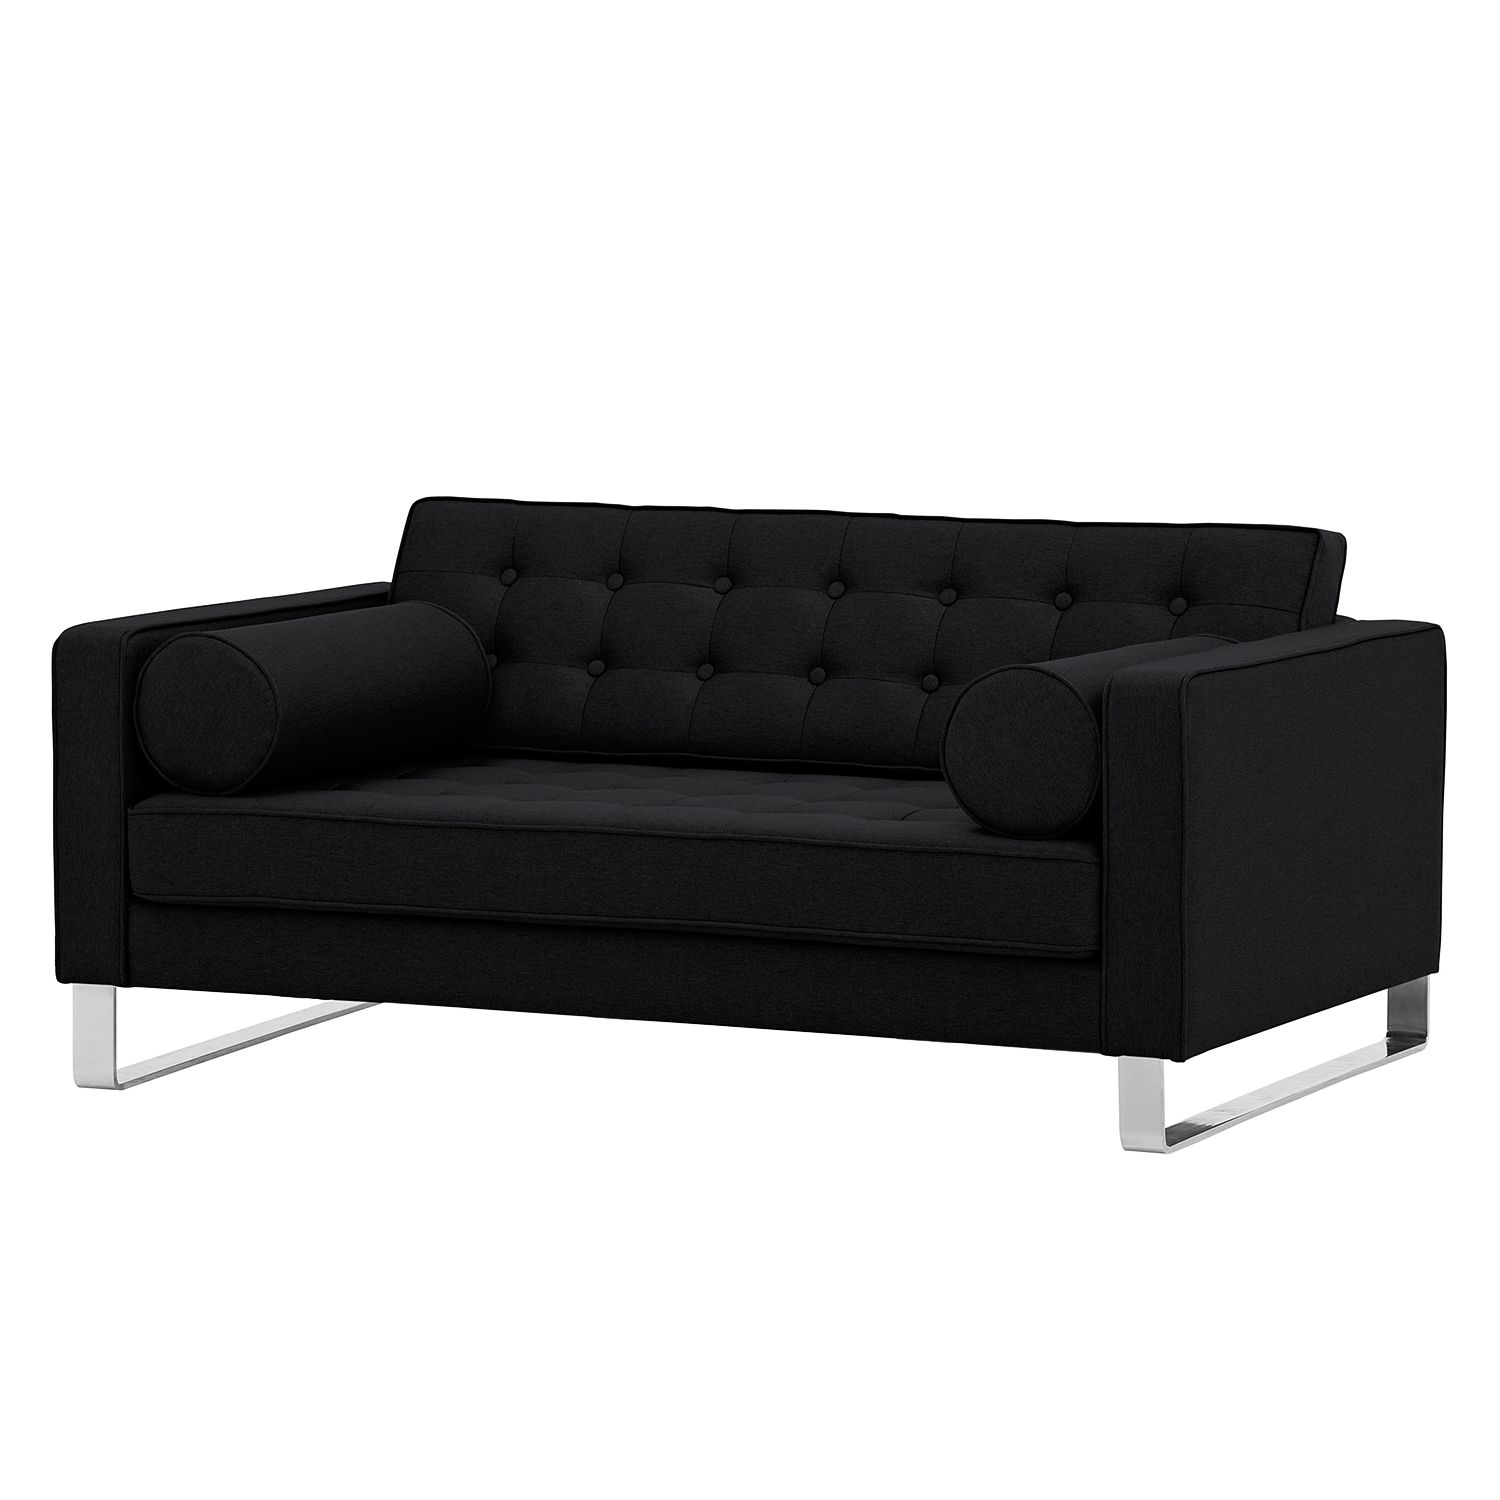 sofa chelsea 2 sitzer webstoff kufen stoff selva anthrazit online bestellen. Black Bedroom Furniture Sets. Home Design Ideas